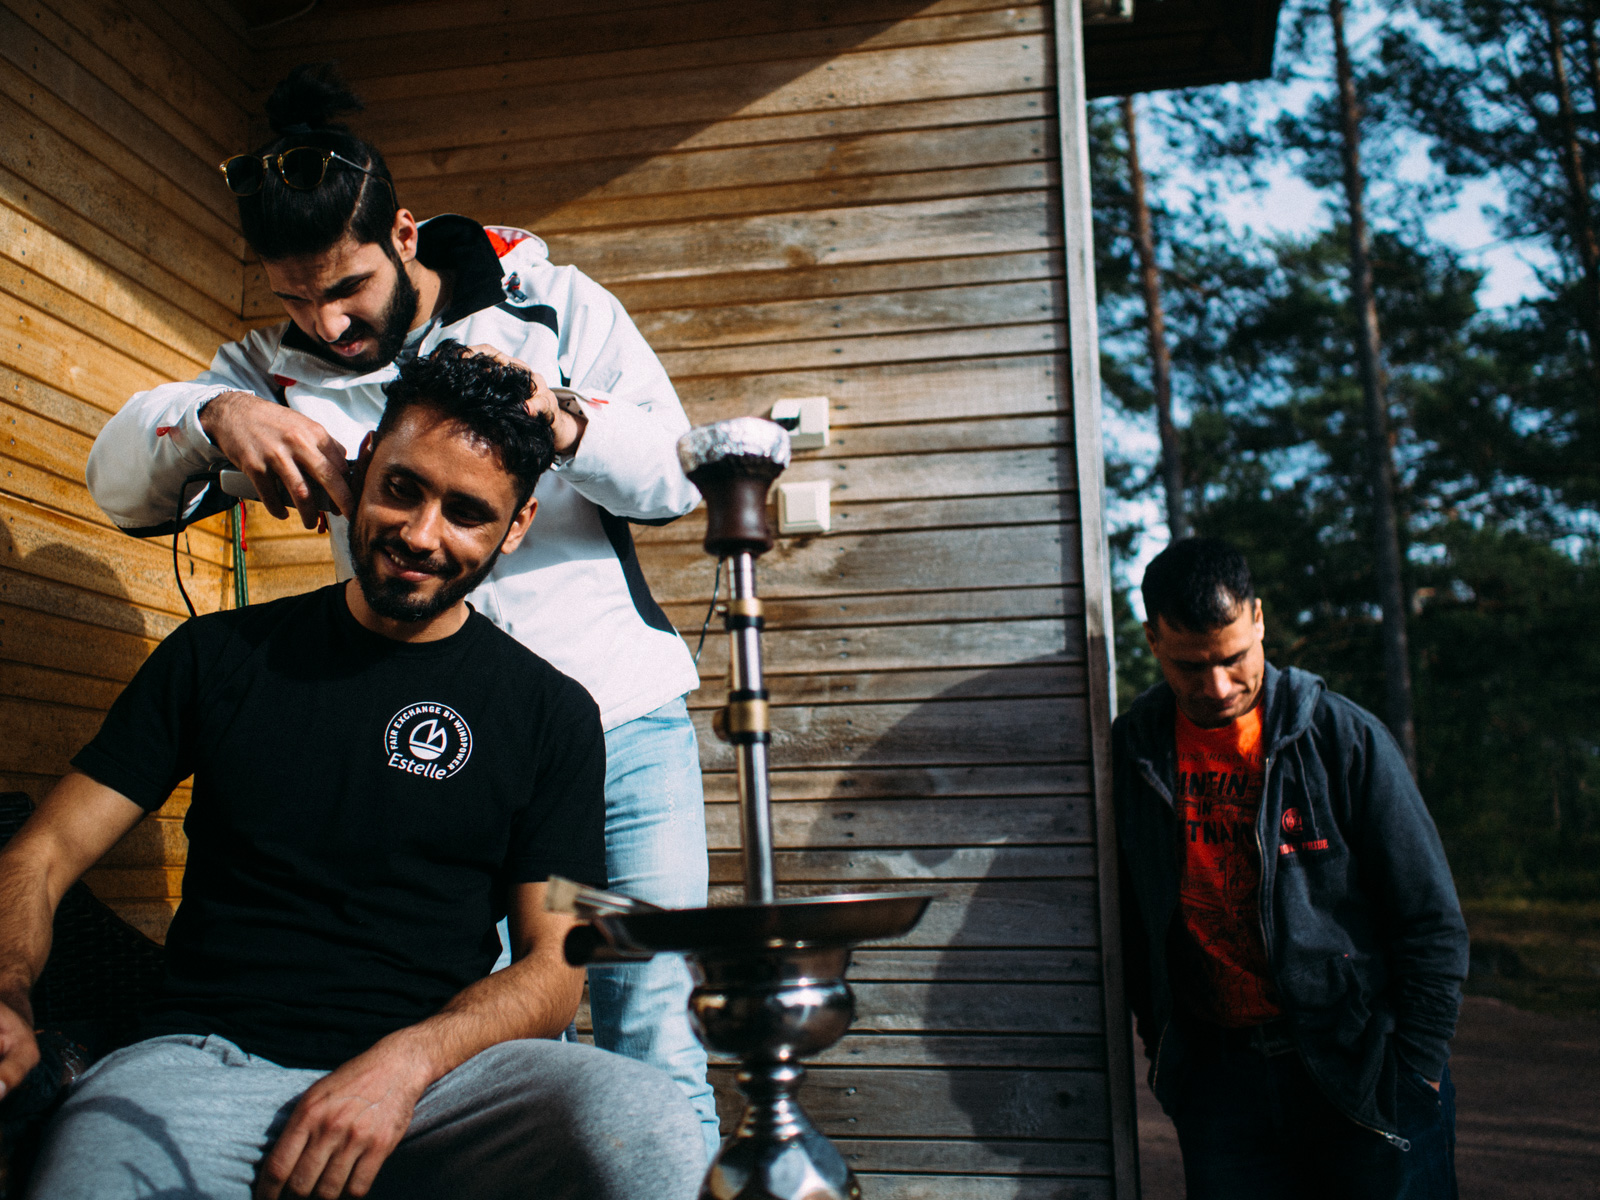 Ihab and Yousuf invited over a friend who they met during the months spent at the refugees centre. He's a hairdresser from Baghdad and arrived in Finland together with his wife and kid.